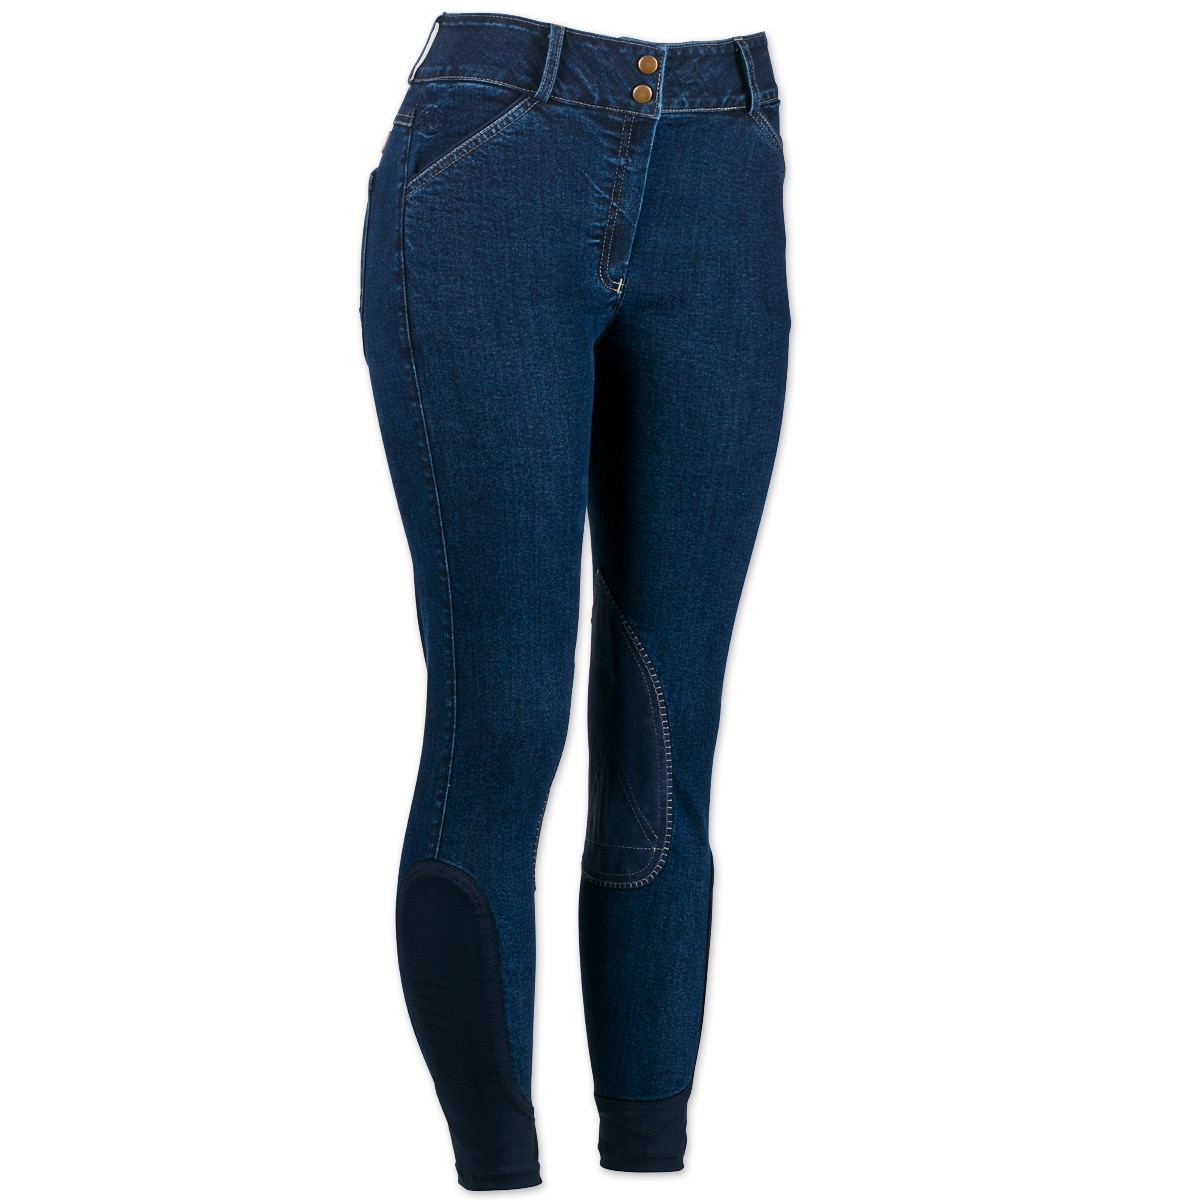 Piper Breeches by SmartPak - Denim Knee Patch